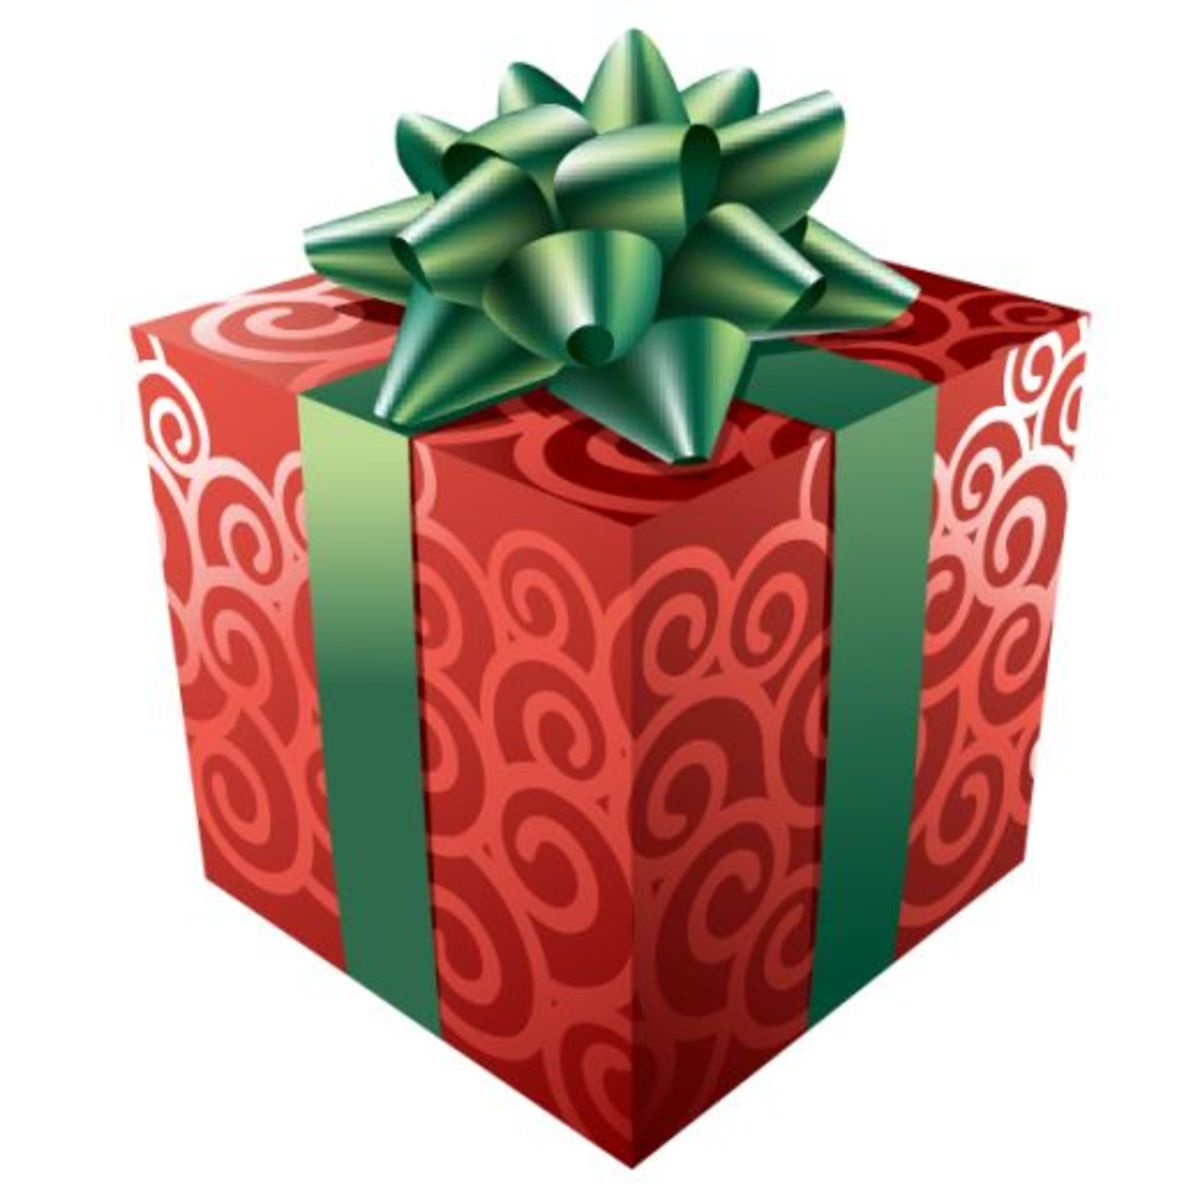 Wrapping presents and giving beautifully gift wrapped gifts is part of the Christmas tradition